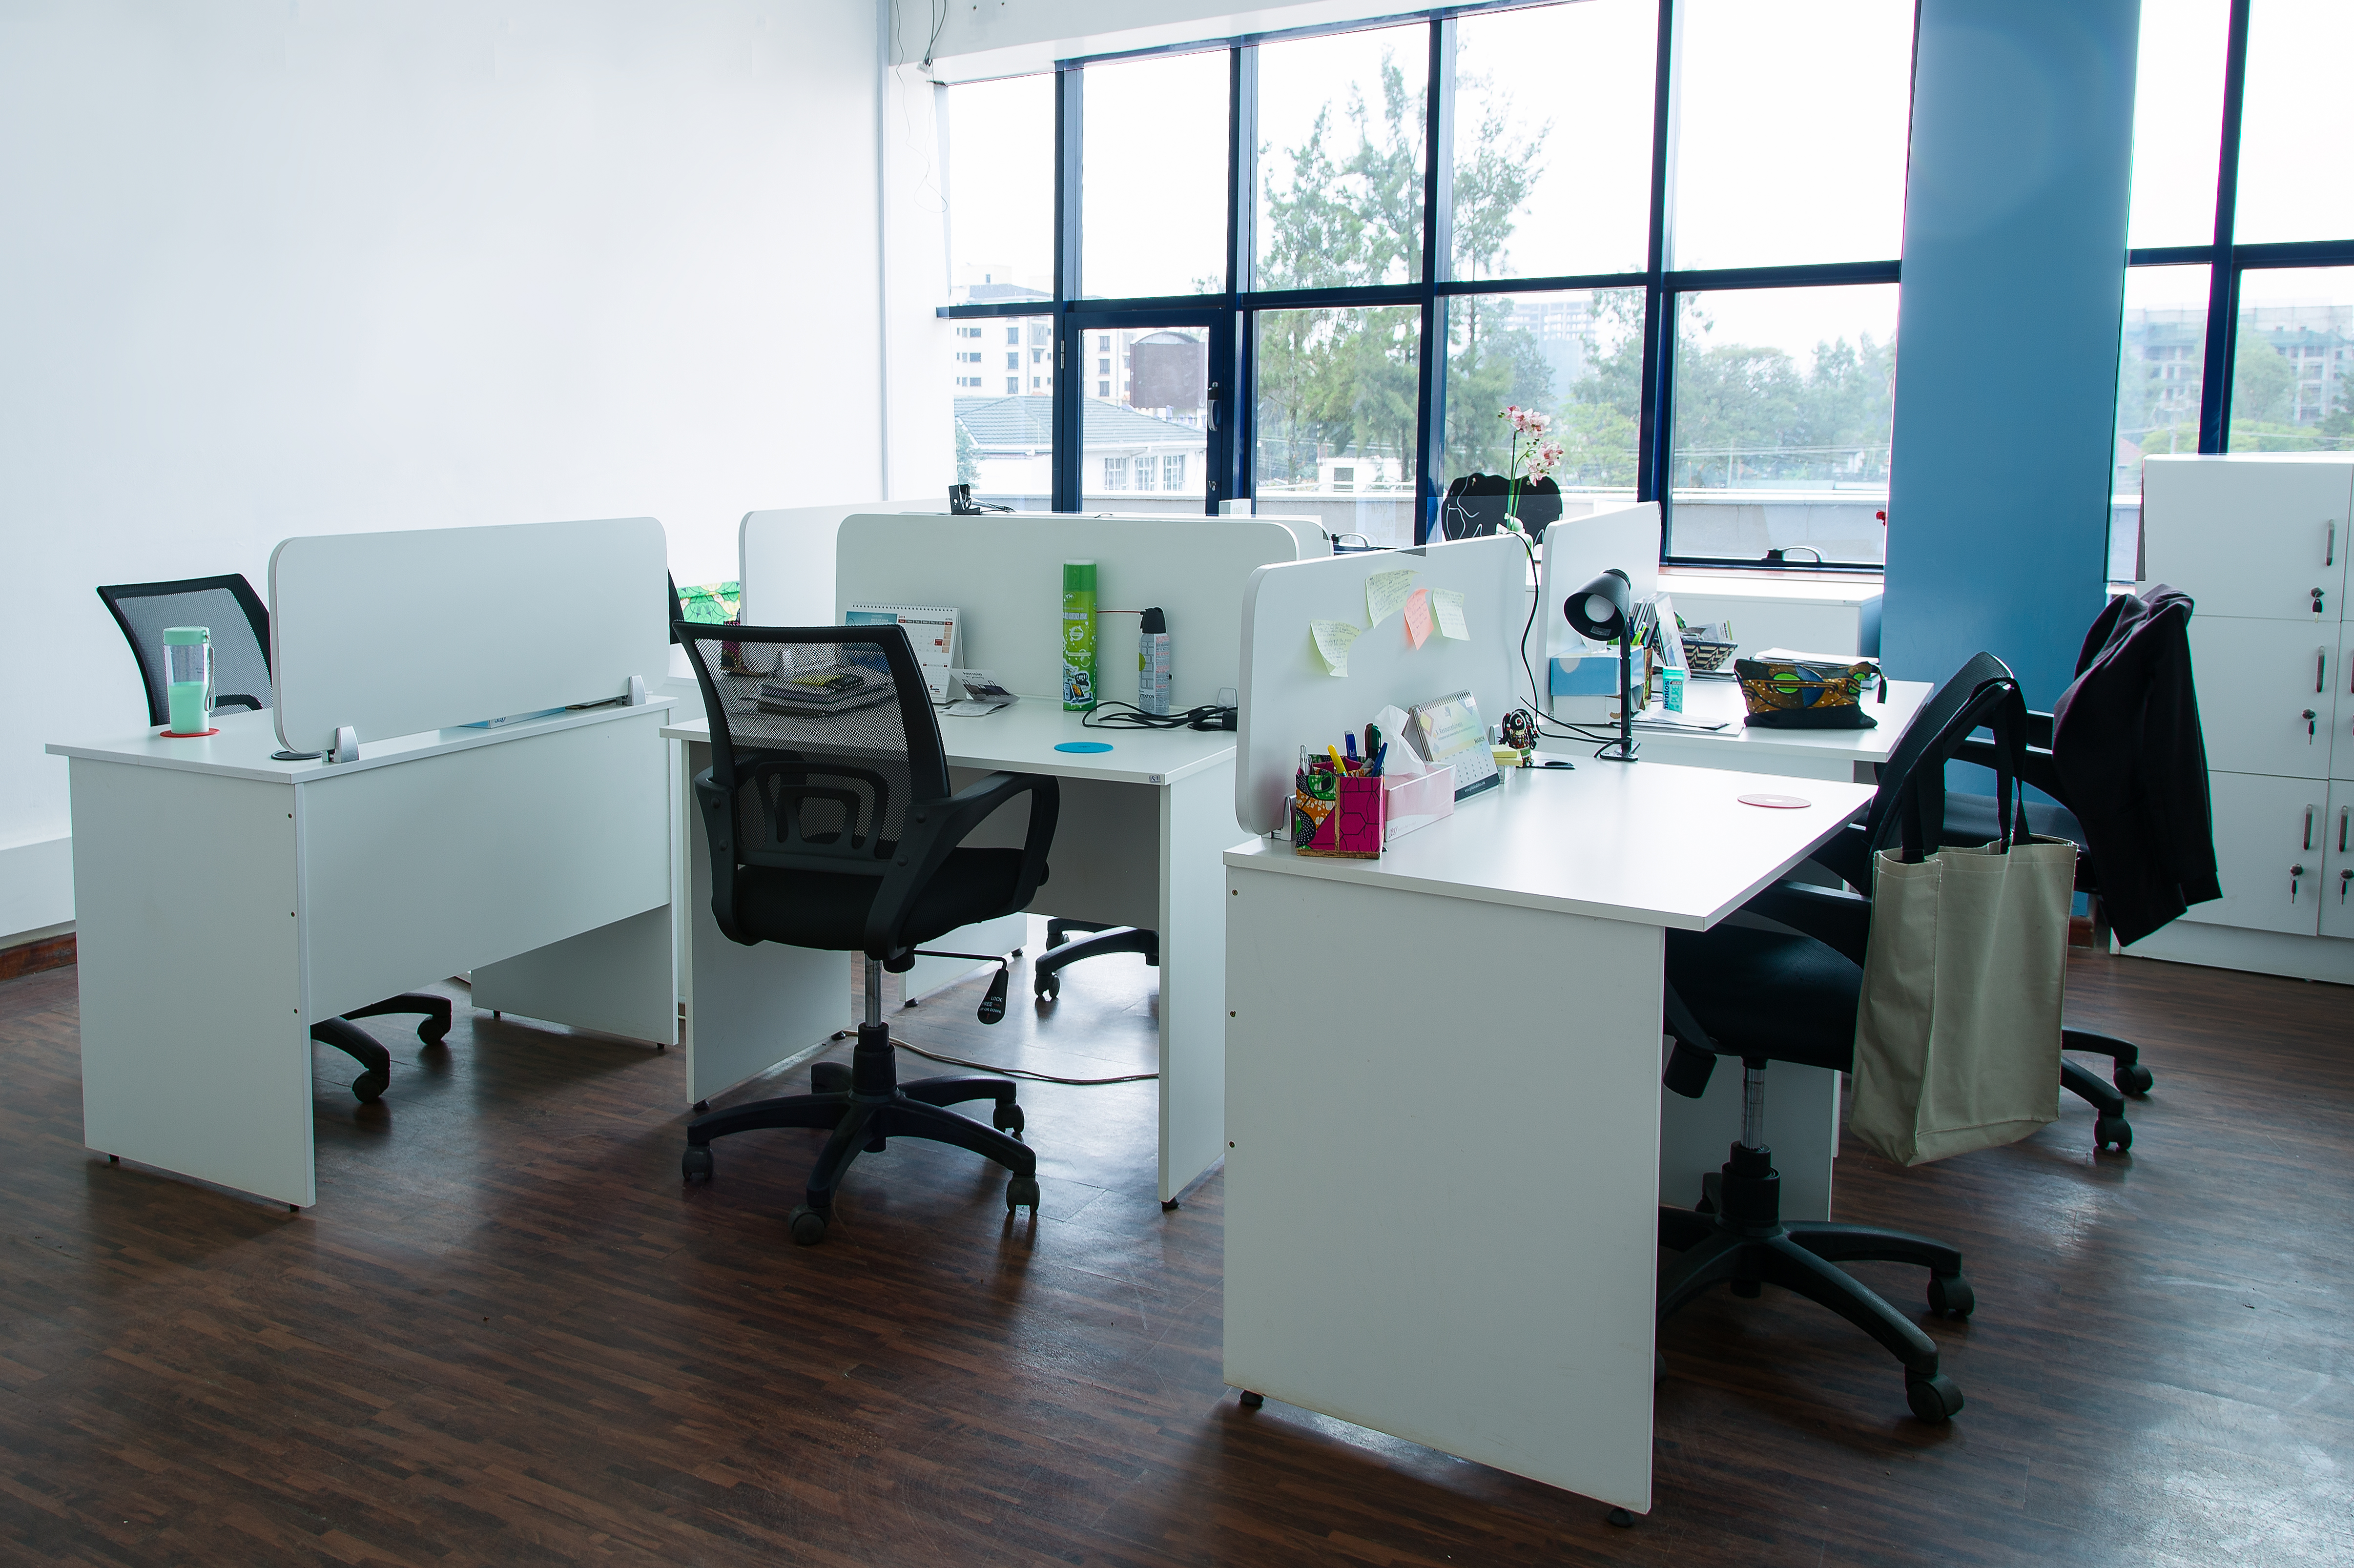 A private office at the Kijiji